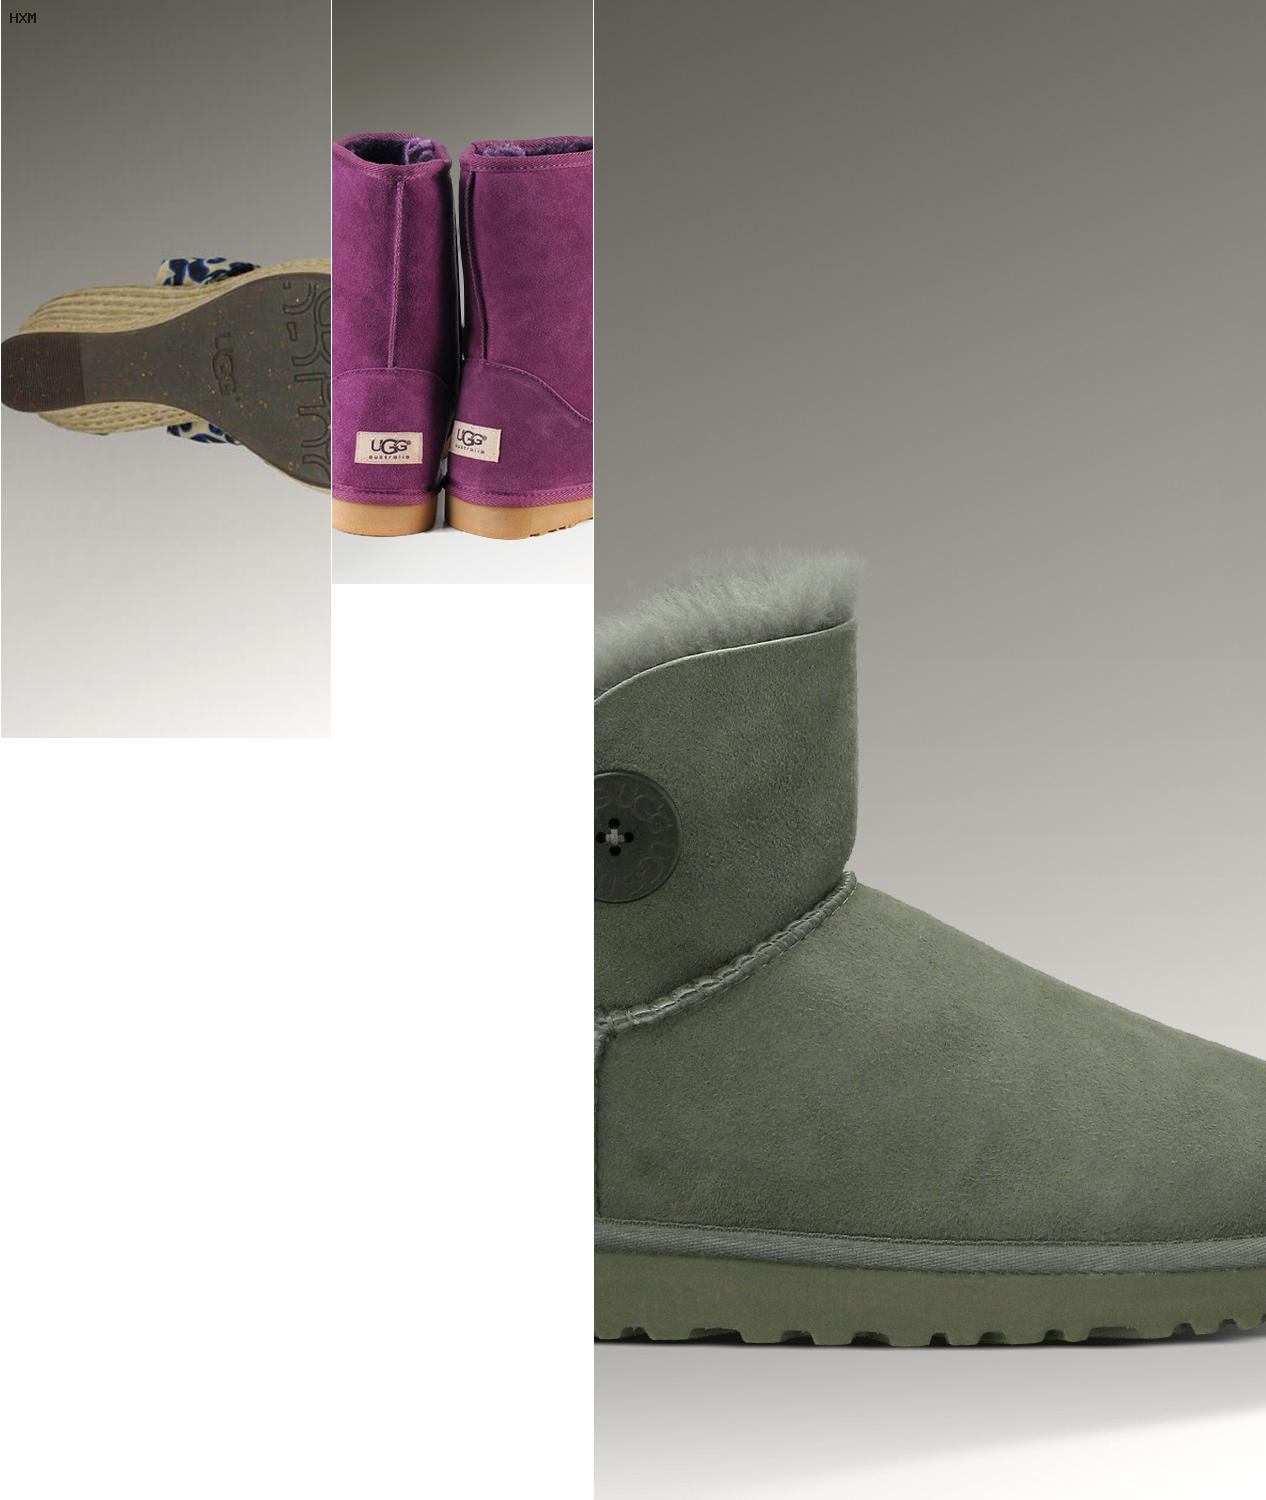 magasin chaussures ugg paris